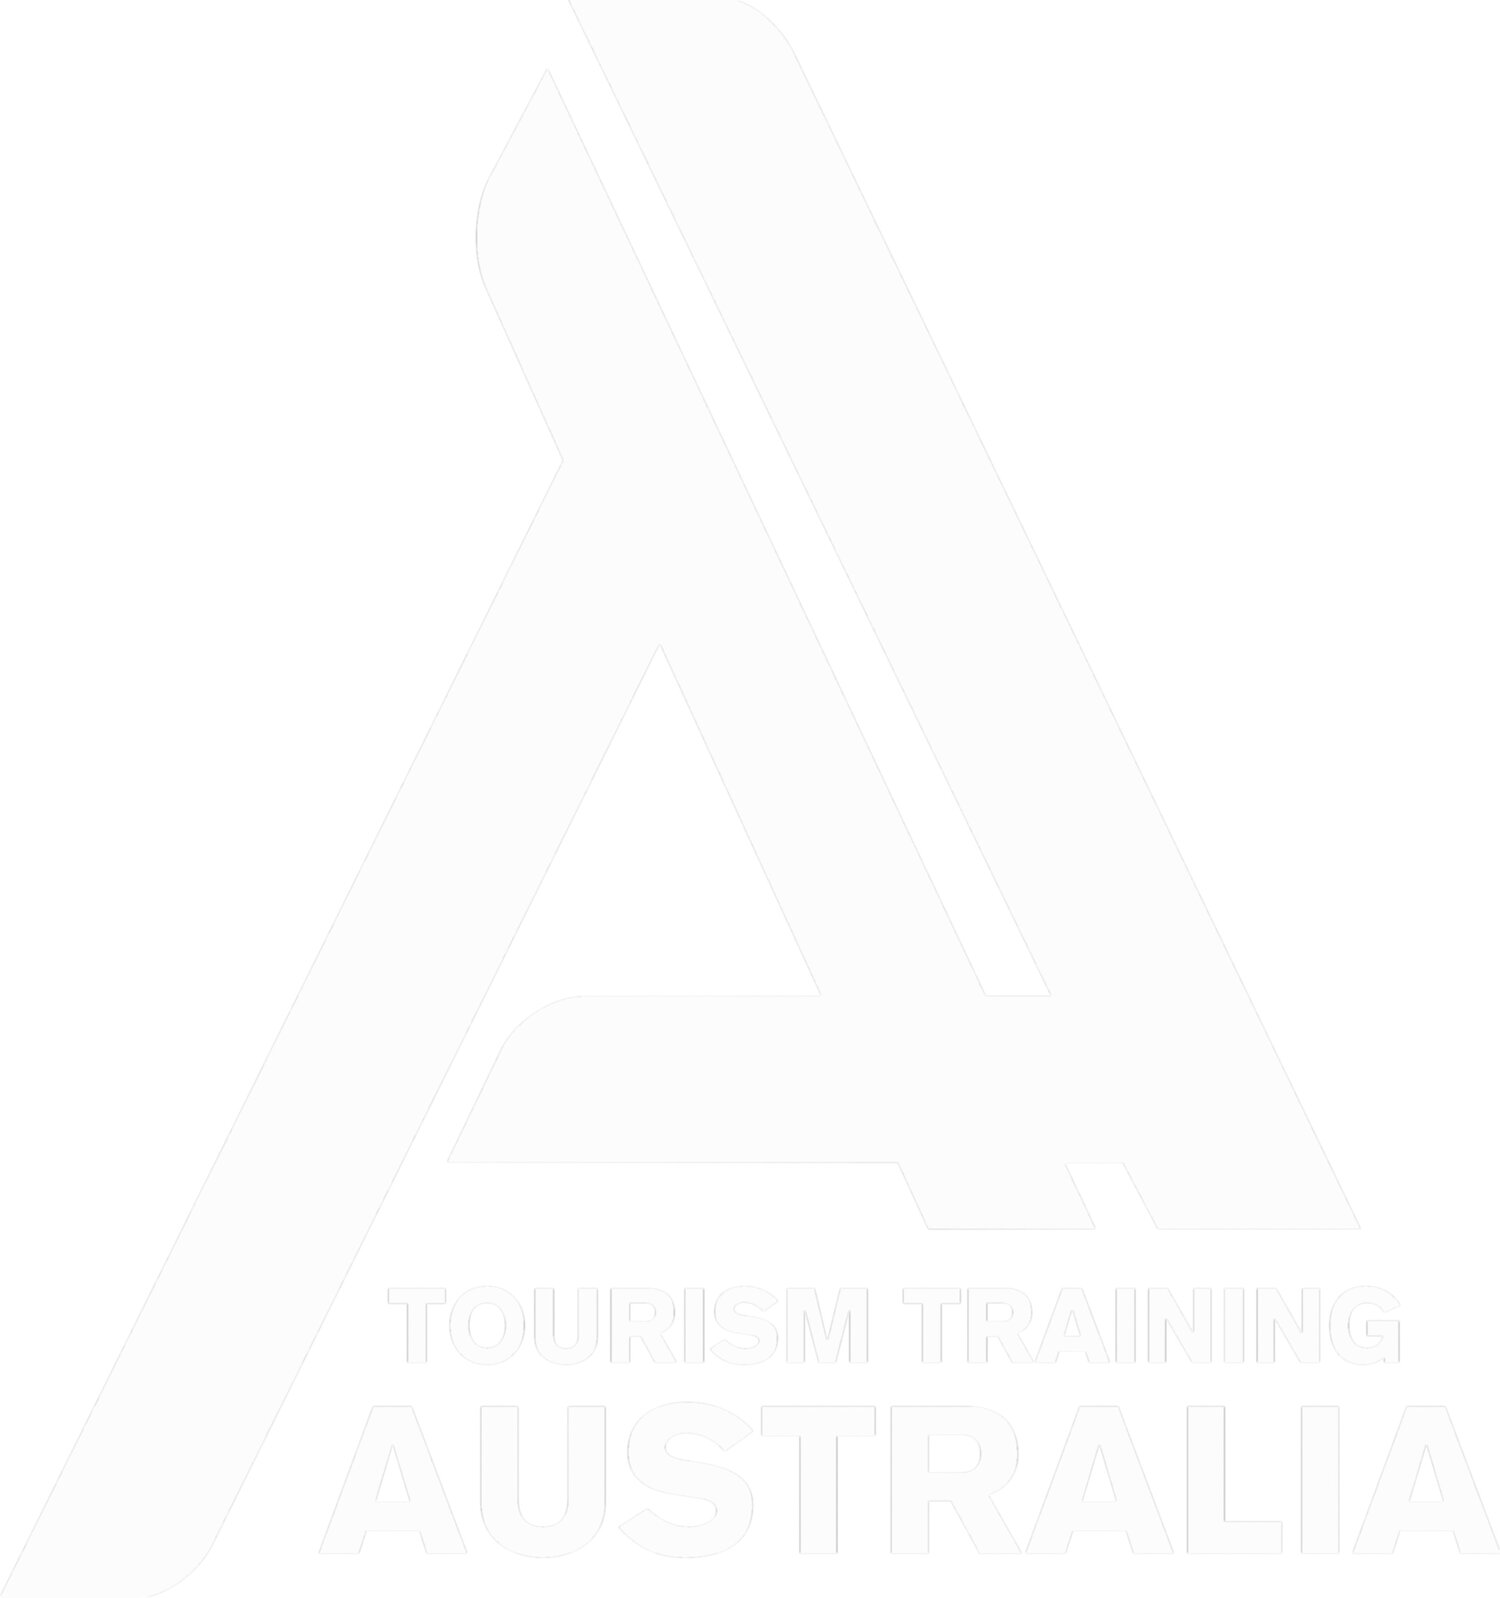 Tourism Training Australia